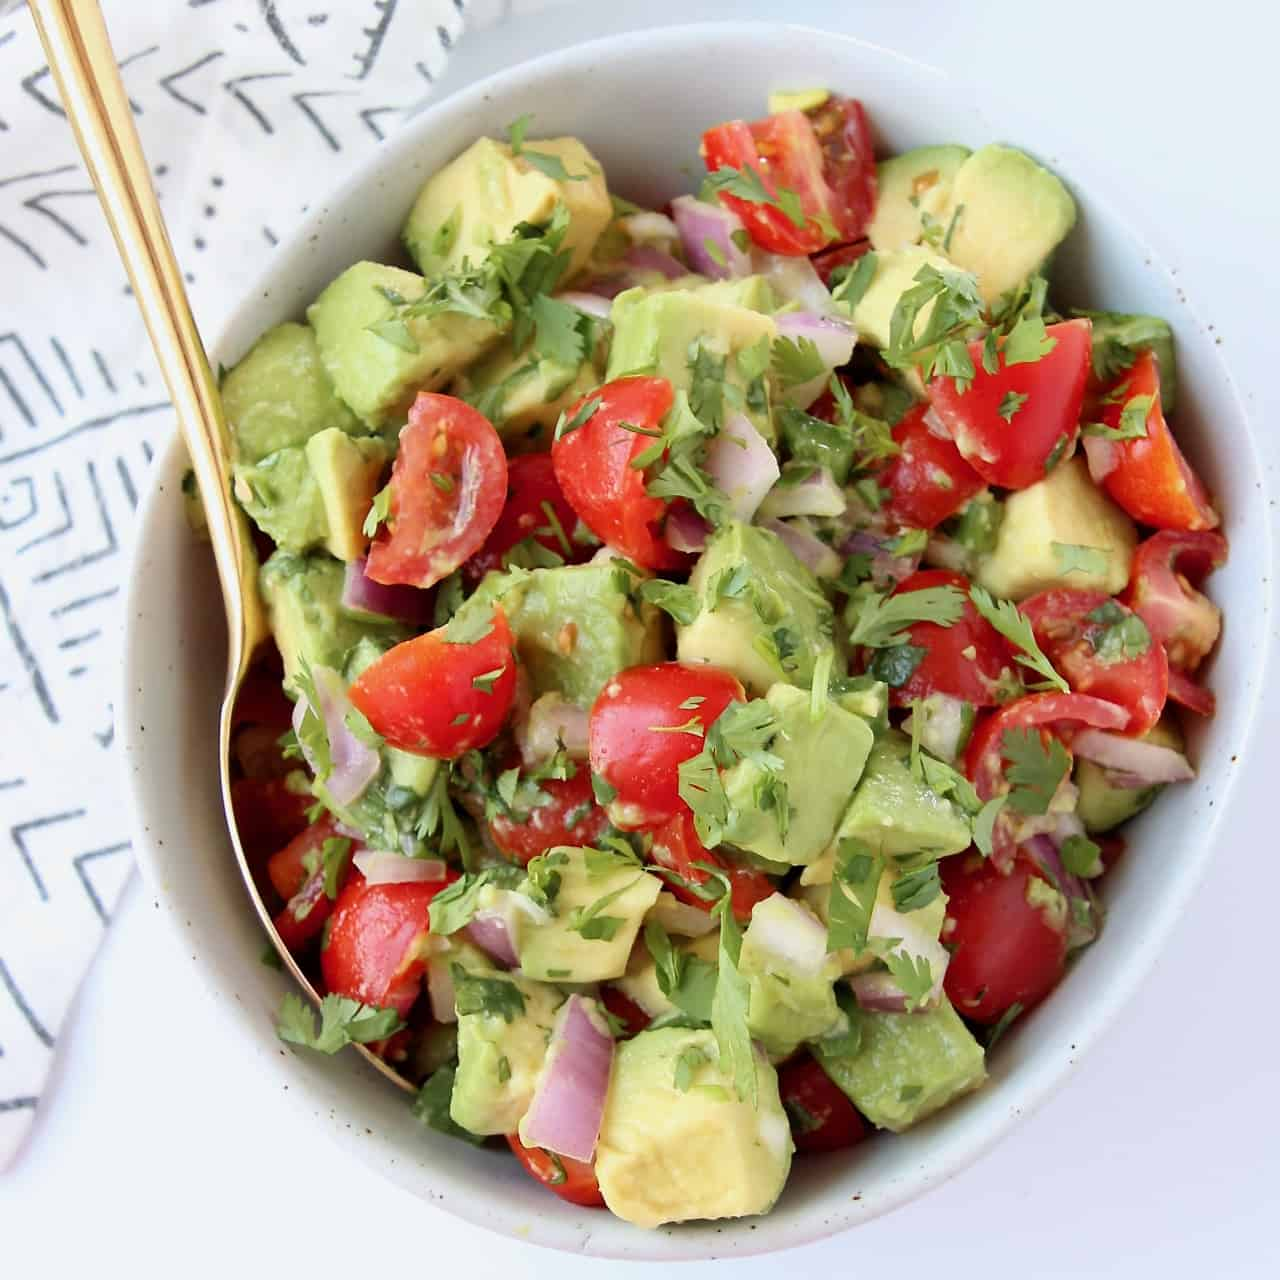 Avocado and tomato salsa in bowl with gold spoon